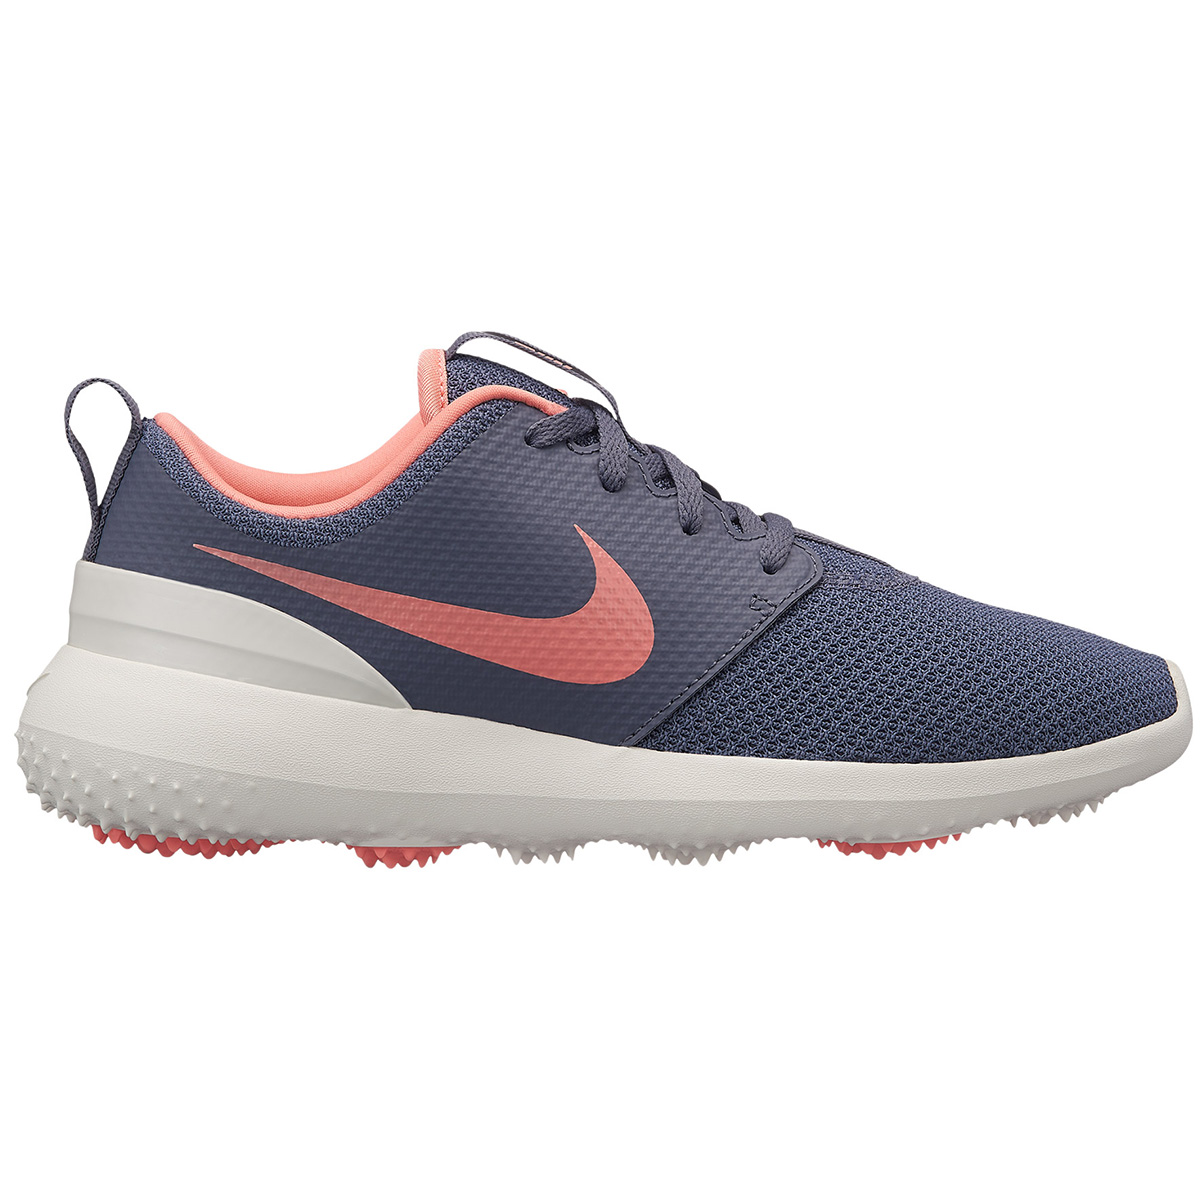 9693bce38cba Nike Golf Roshe G Ladies Shoes from american golf